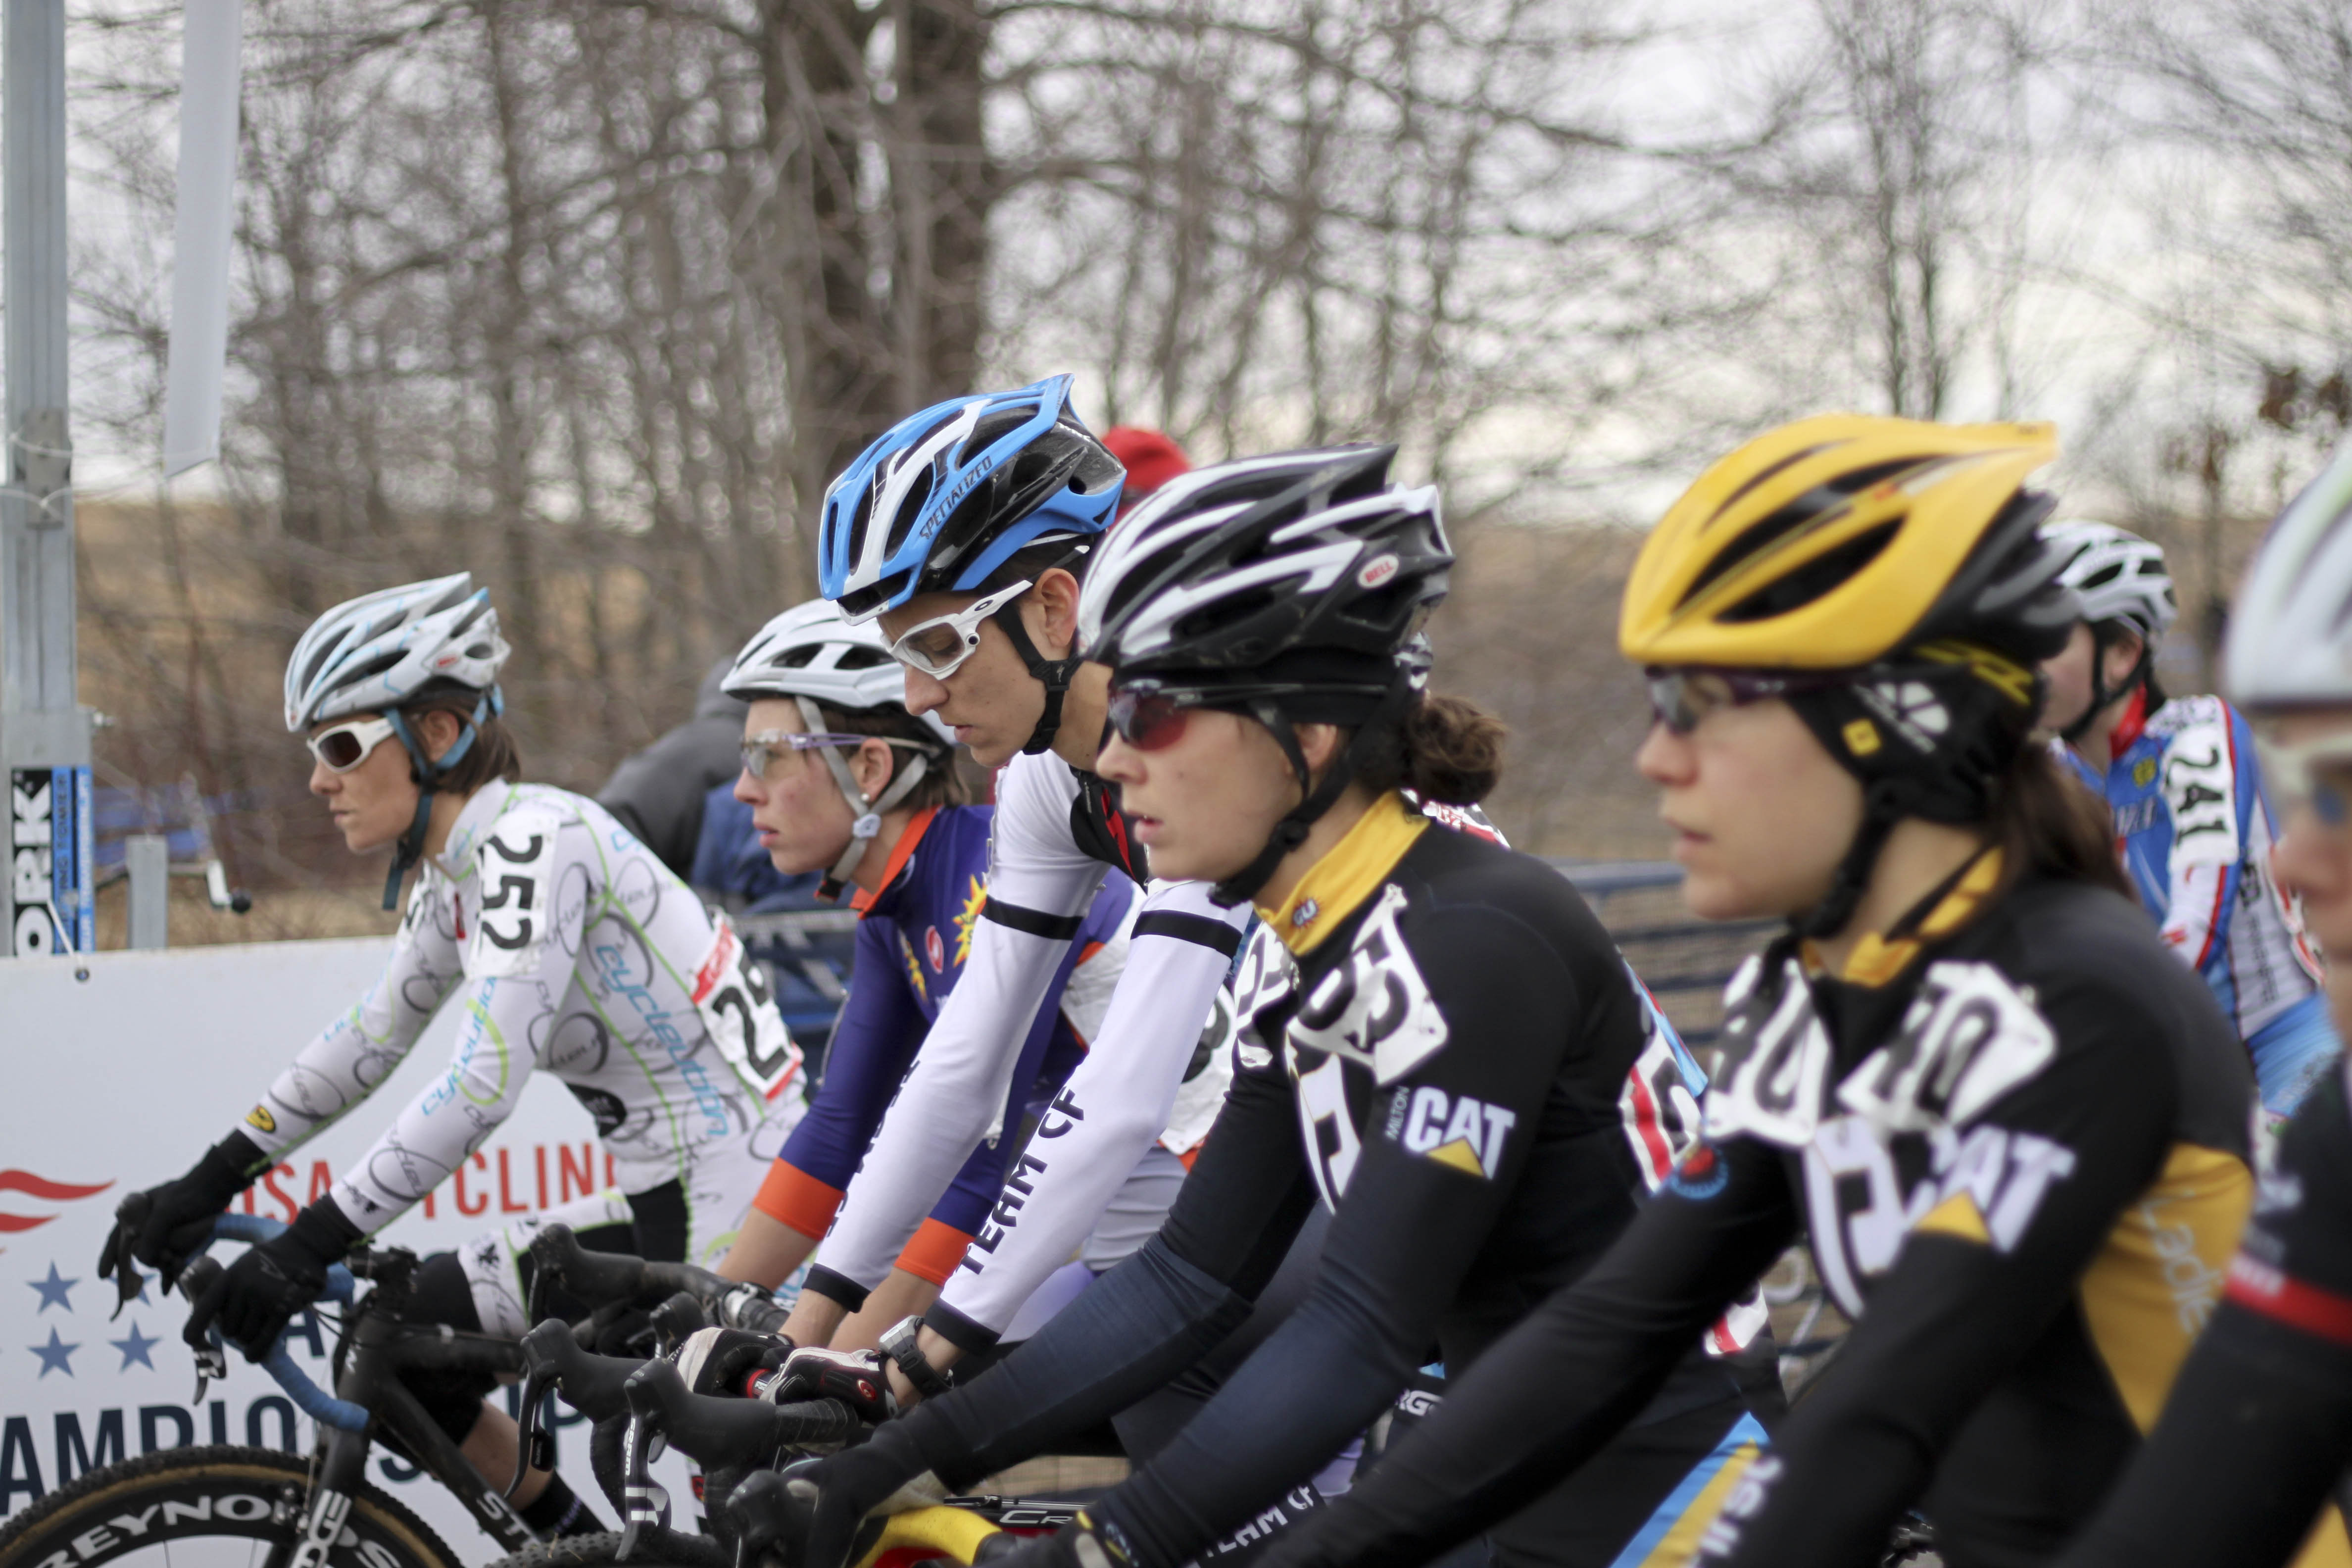 Anna Dingman, in the background, went on to finish 10th.. © Cyclocross Magazine